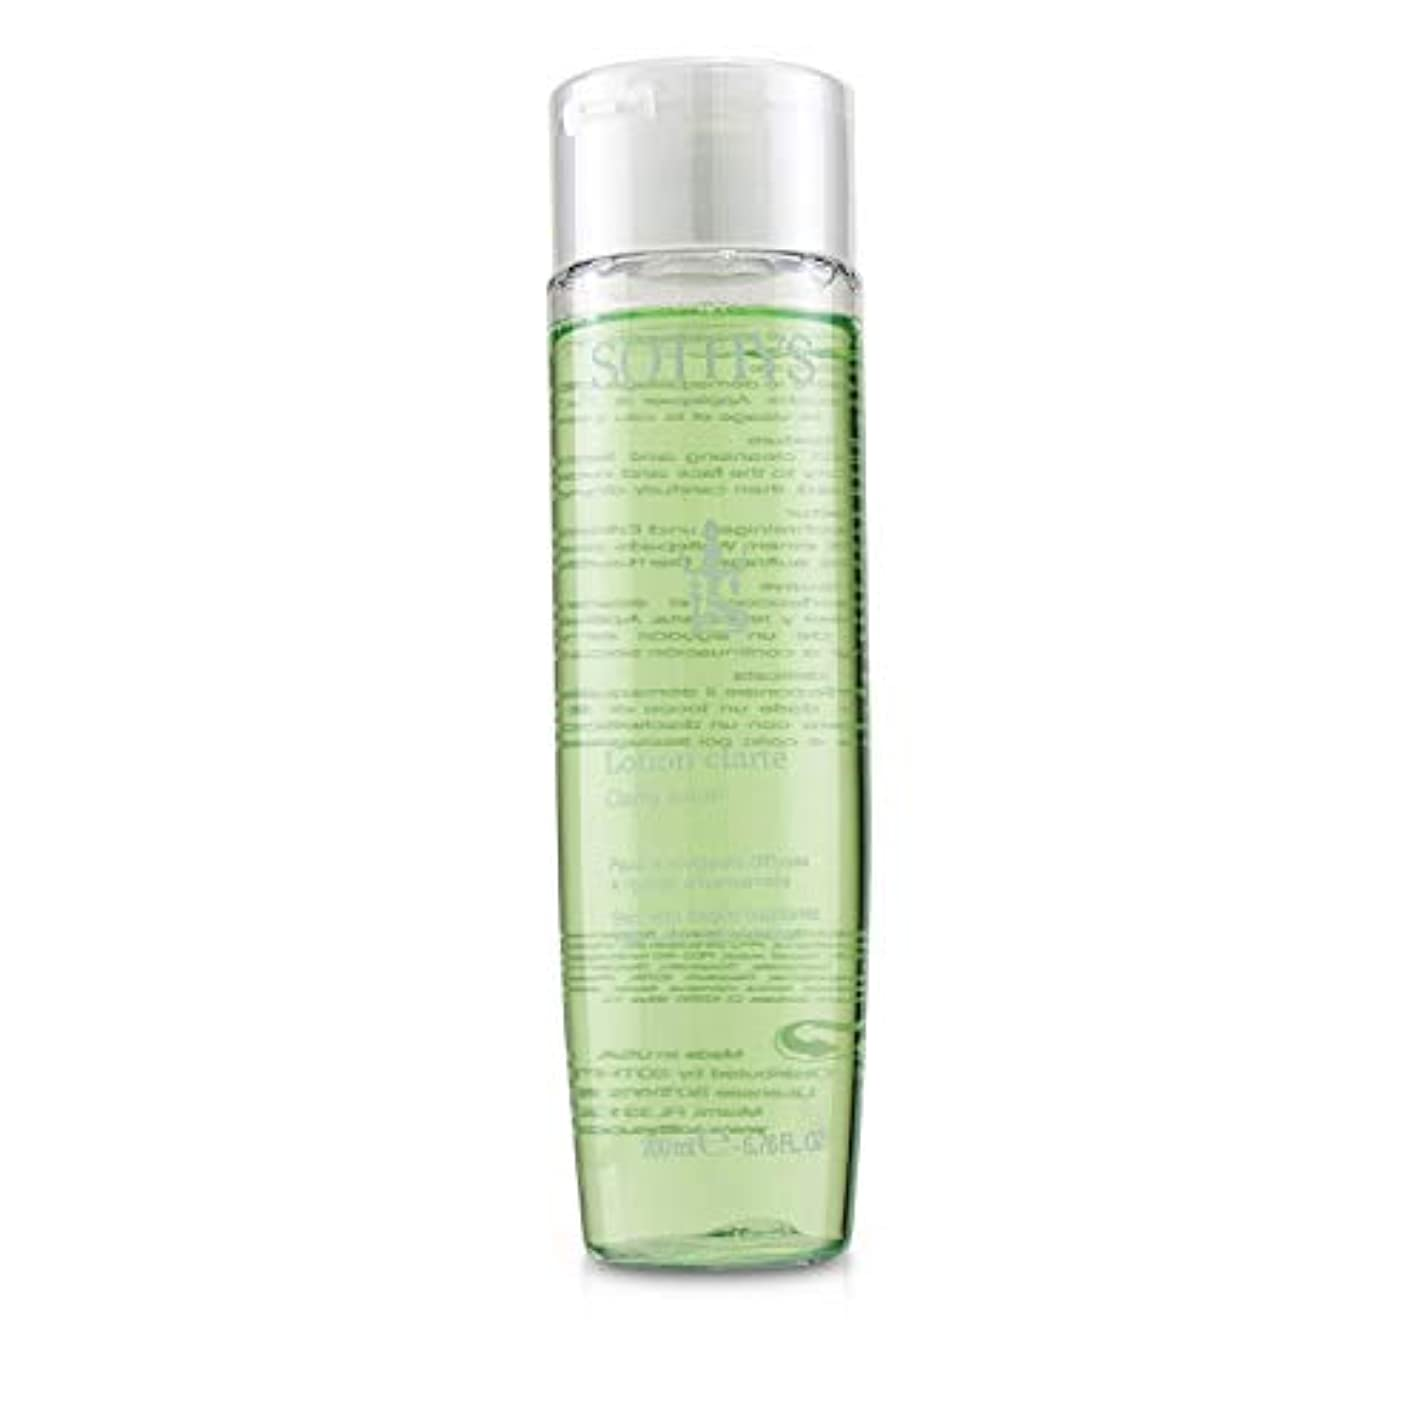 ポータルリレー変更Sothys Clarity Lotion - For Skin With Fragile Capillaries, With Witch Hazel Extract 200ml/6.76oz並行輸入品